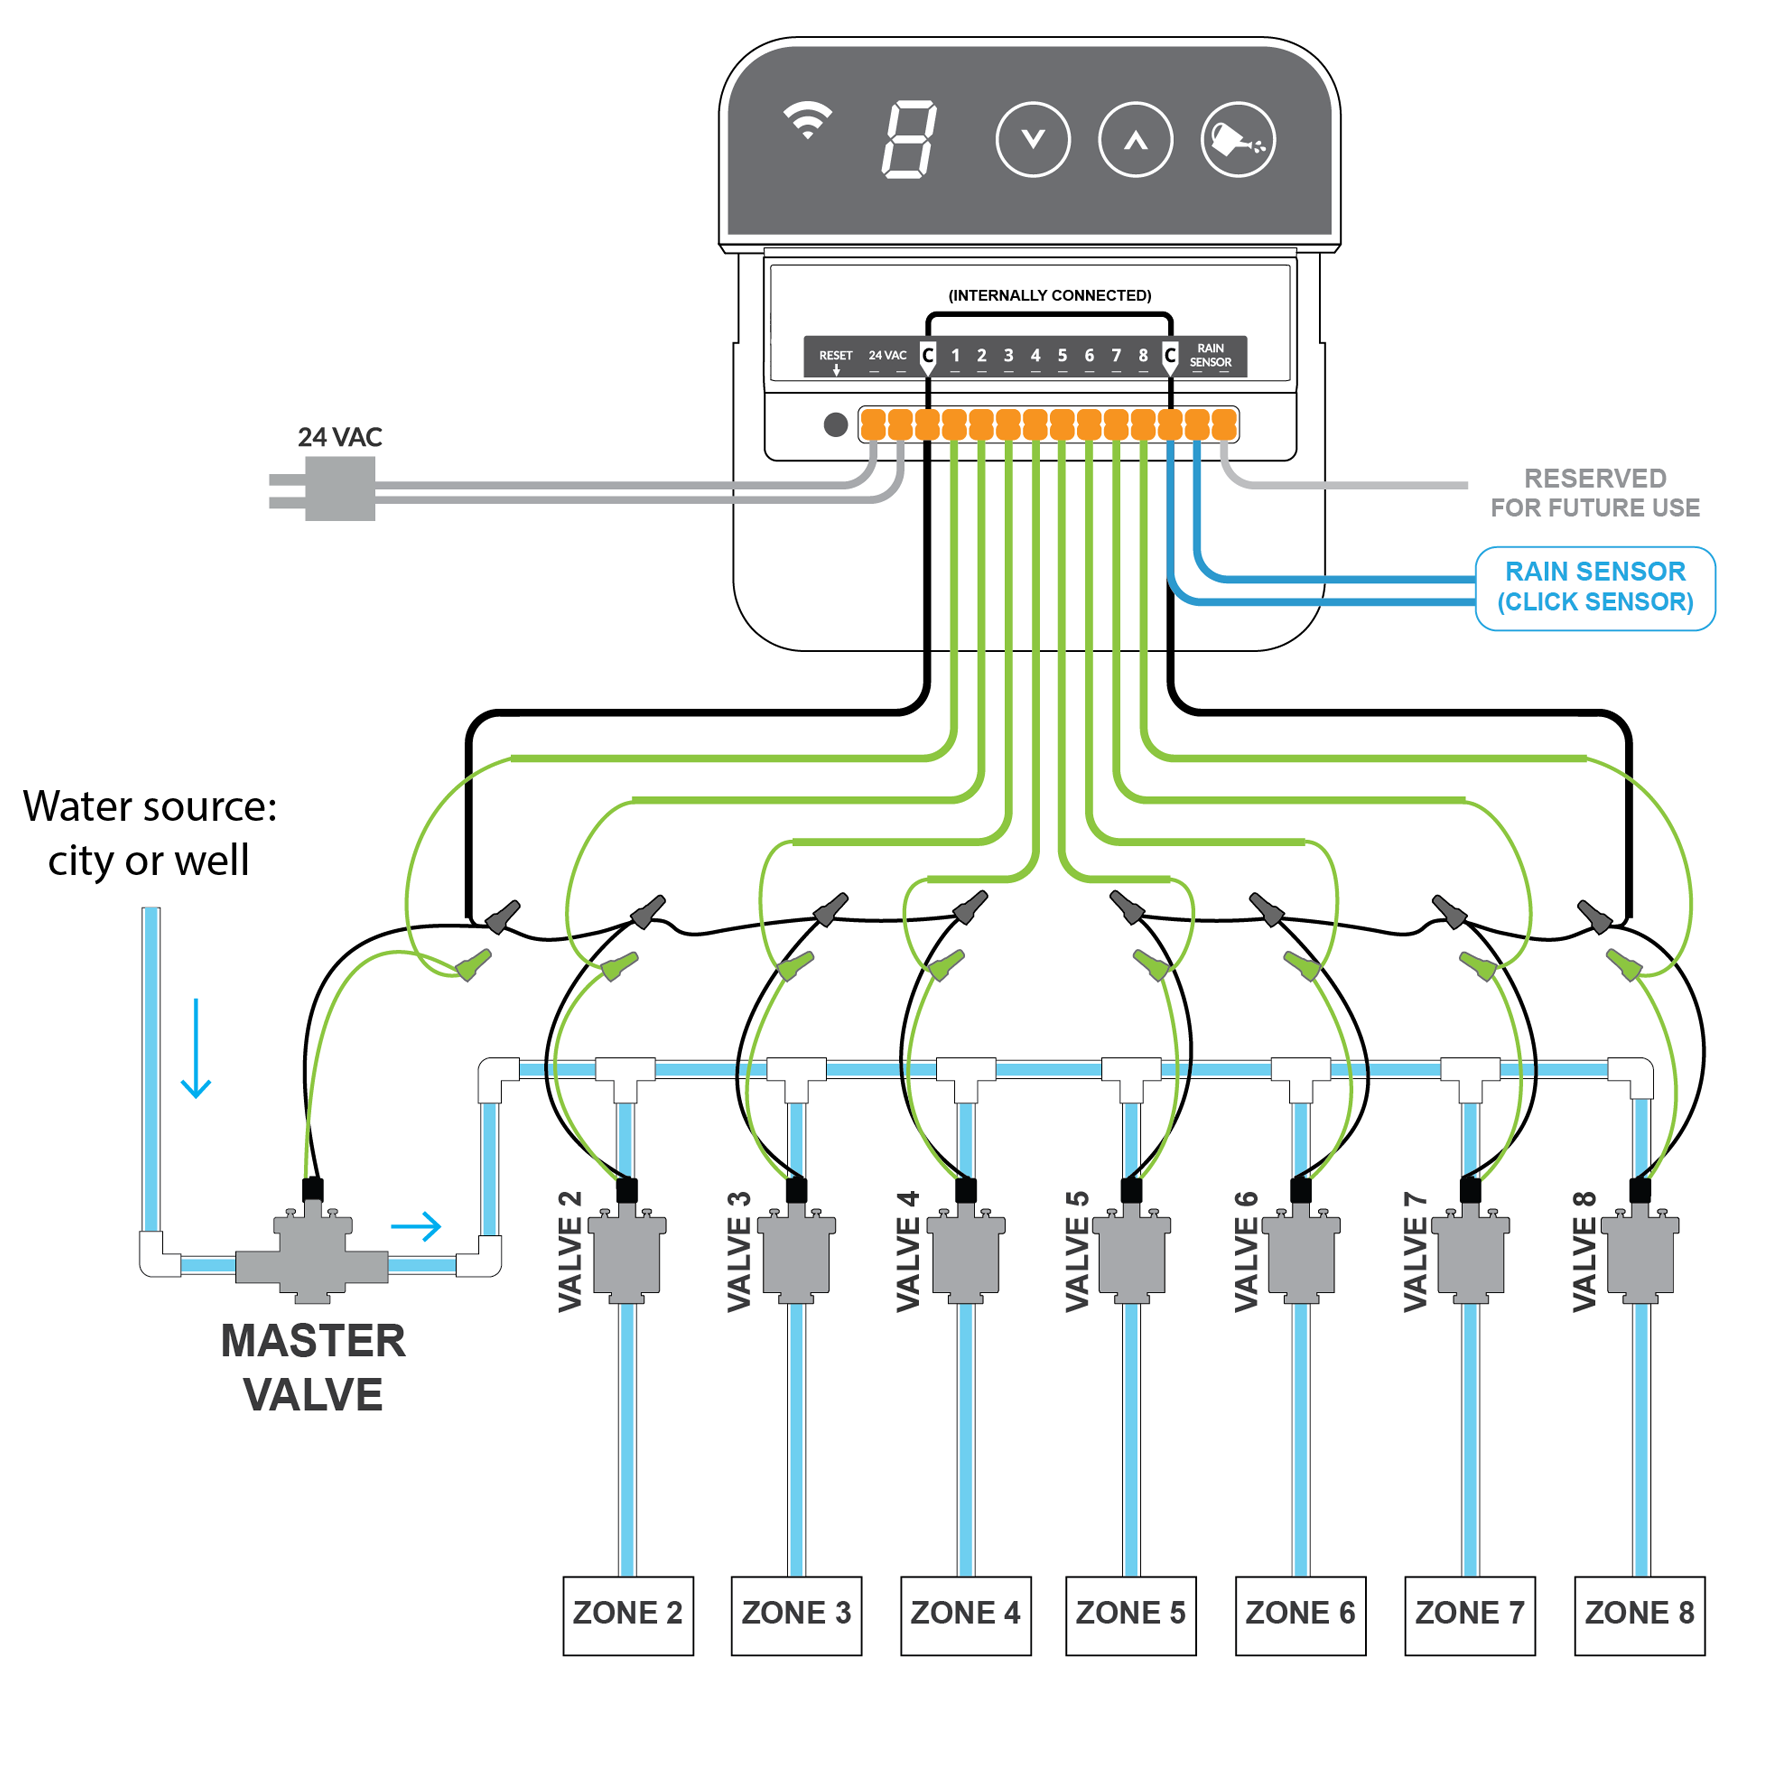 How Do I Connect A Pump Relay Master Valve To My Rainmachine